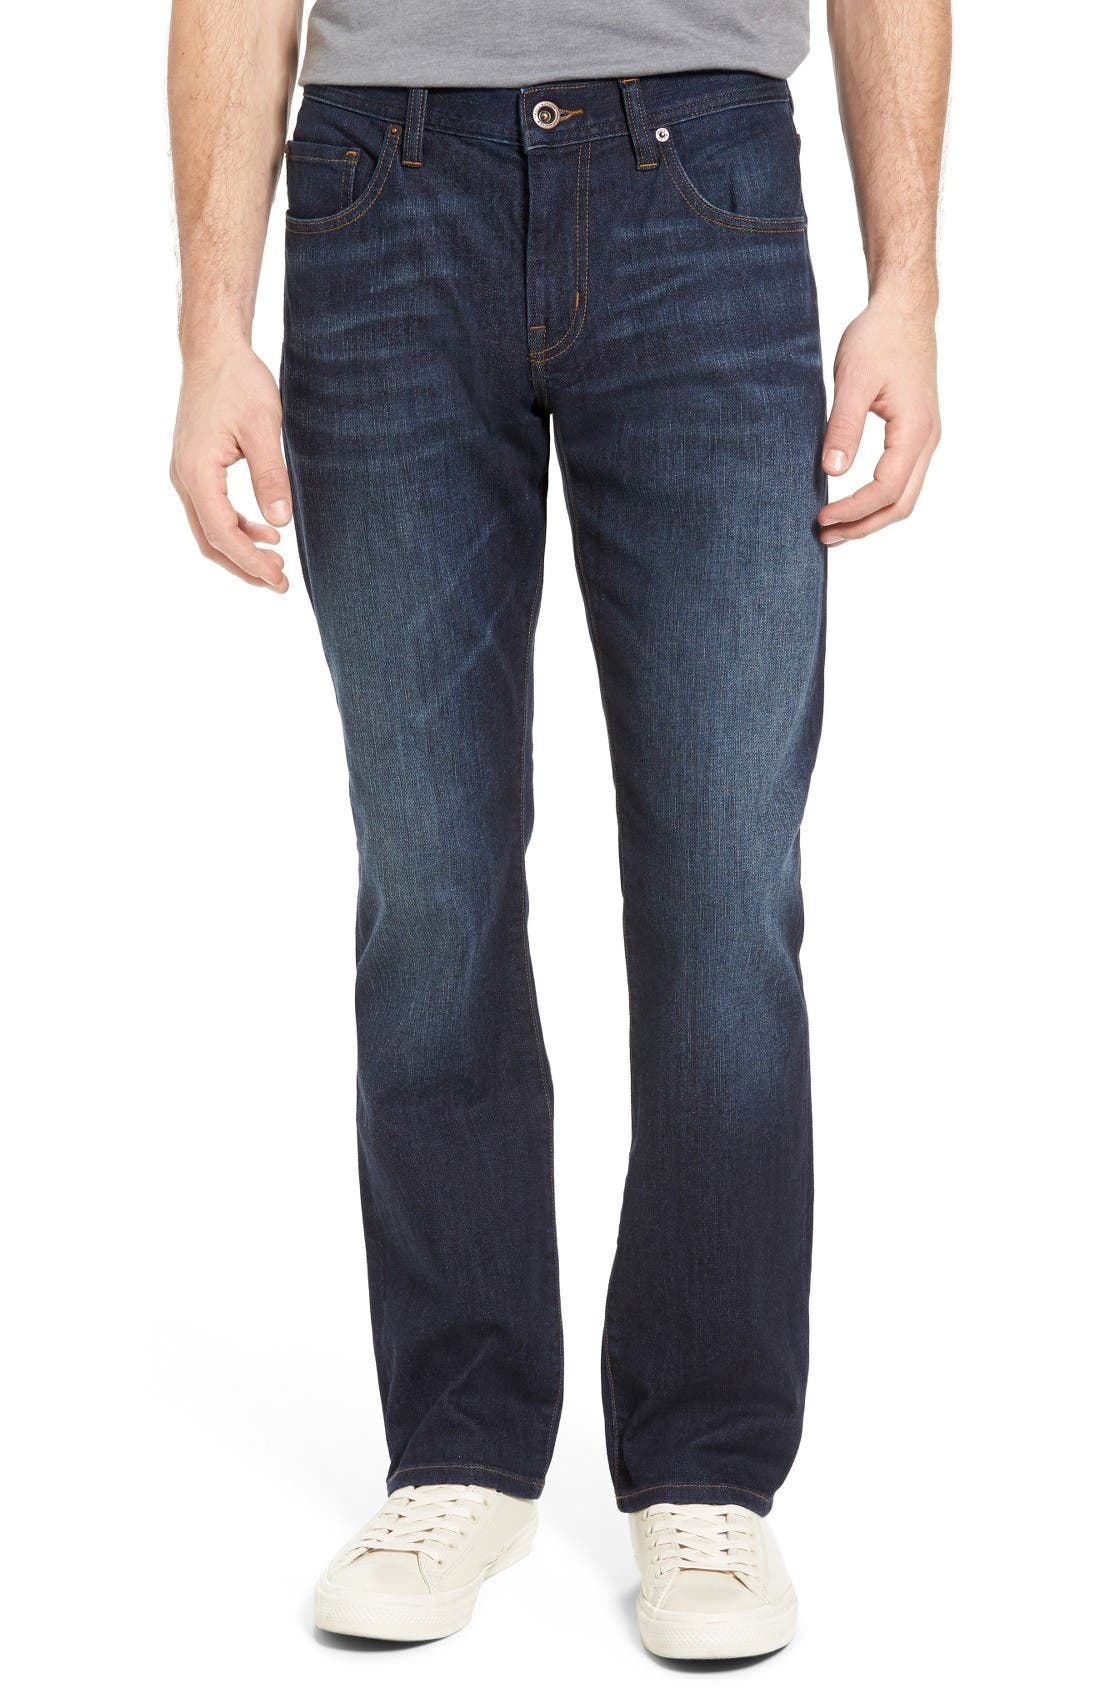 'Duke' Relaxed Fit Jeans,                         Main,                         color, Indigo